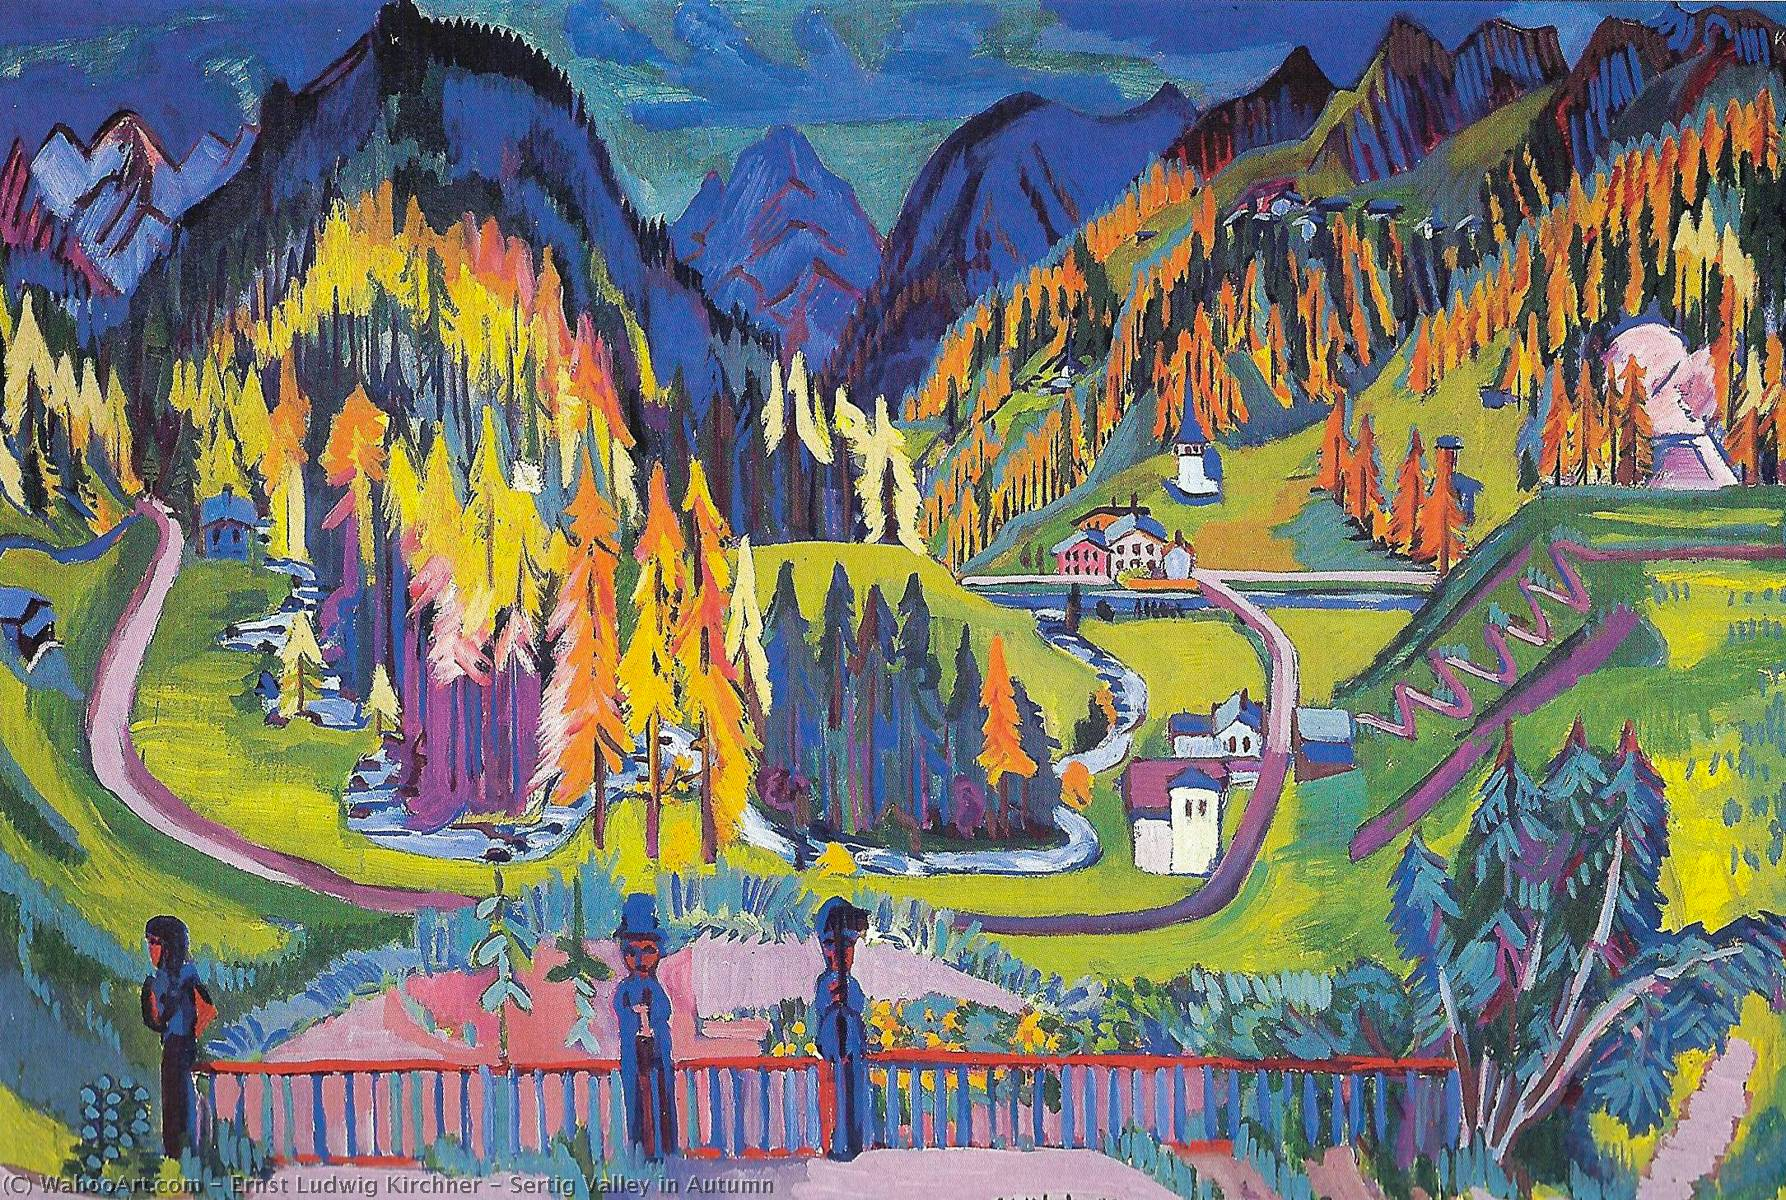 Sertig Valle in autunno, olio su tela di Ernst Ludwig Kirchner (1880-1938, Germany)